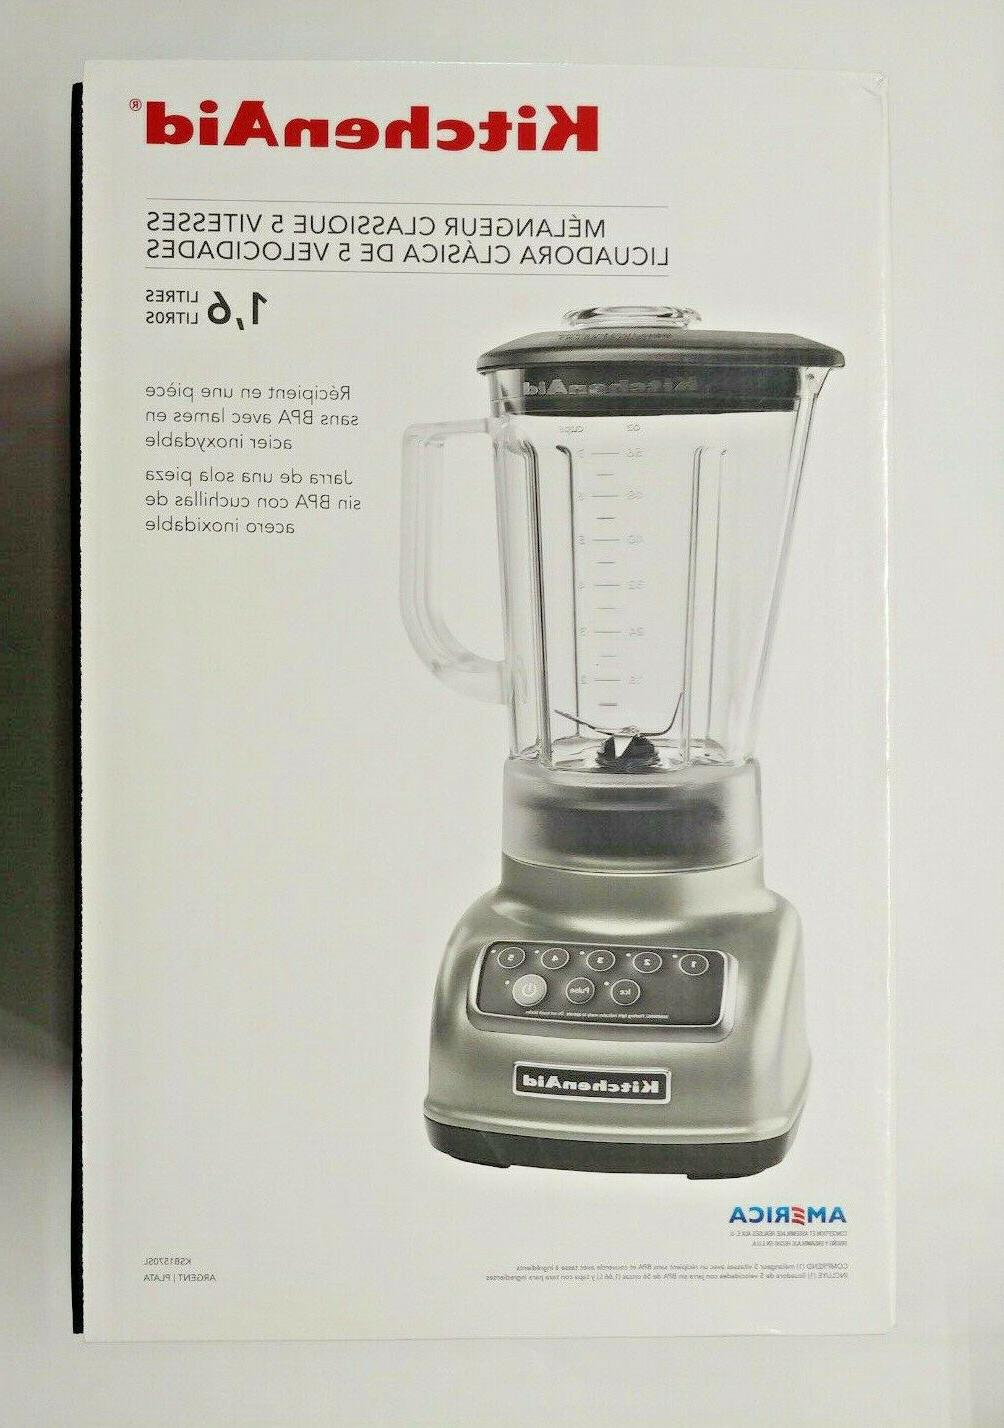 KitchenAid KSB1570SL 5-Speed Blender with 56-Ounce BPA-Free